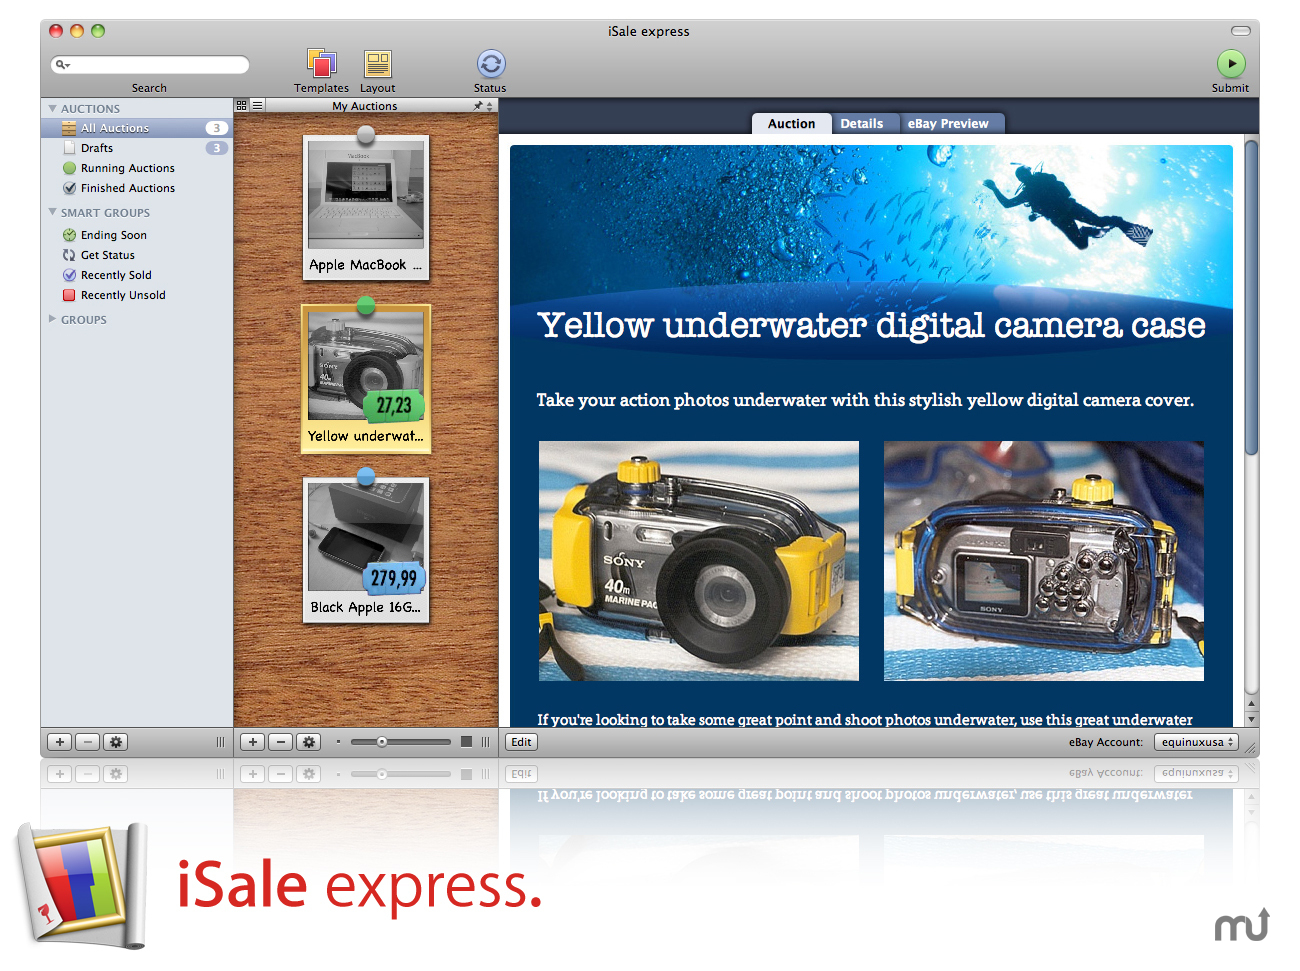 Screenshot 1 for iSale express